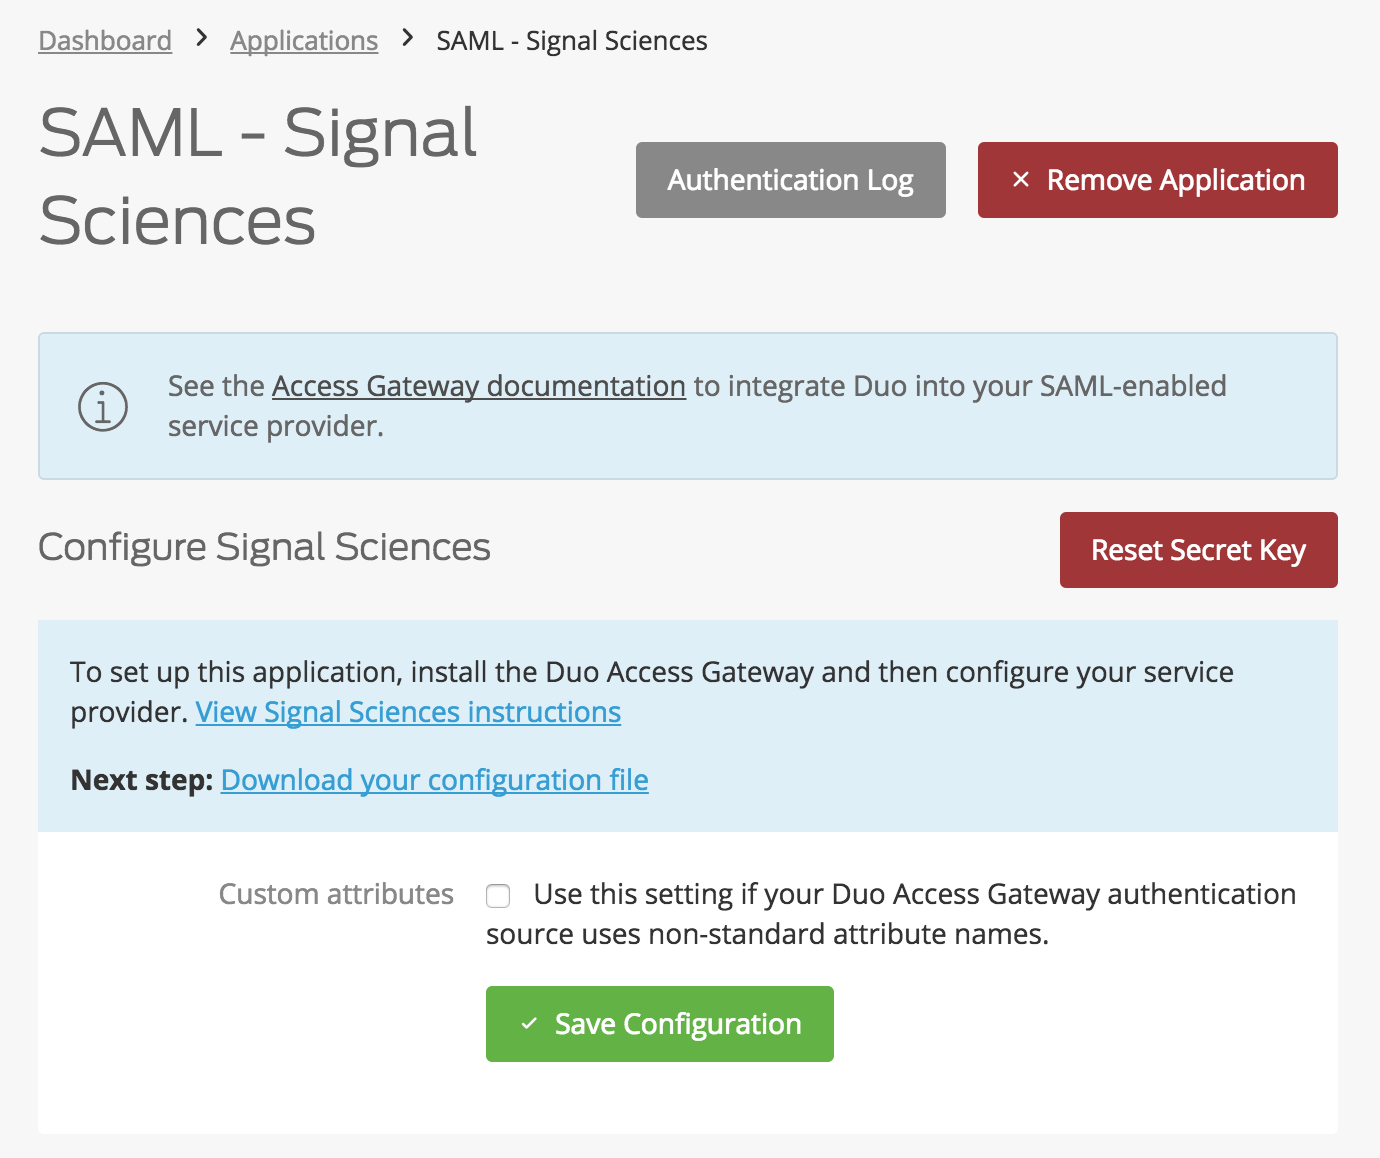 Duo Signal Sciences Application Settings